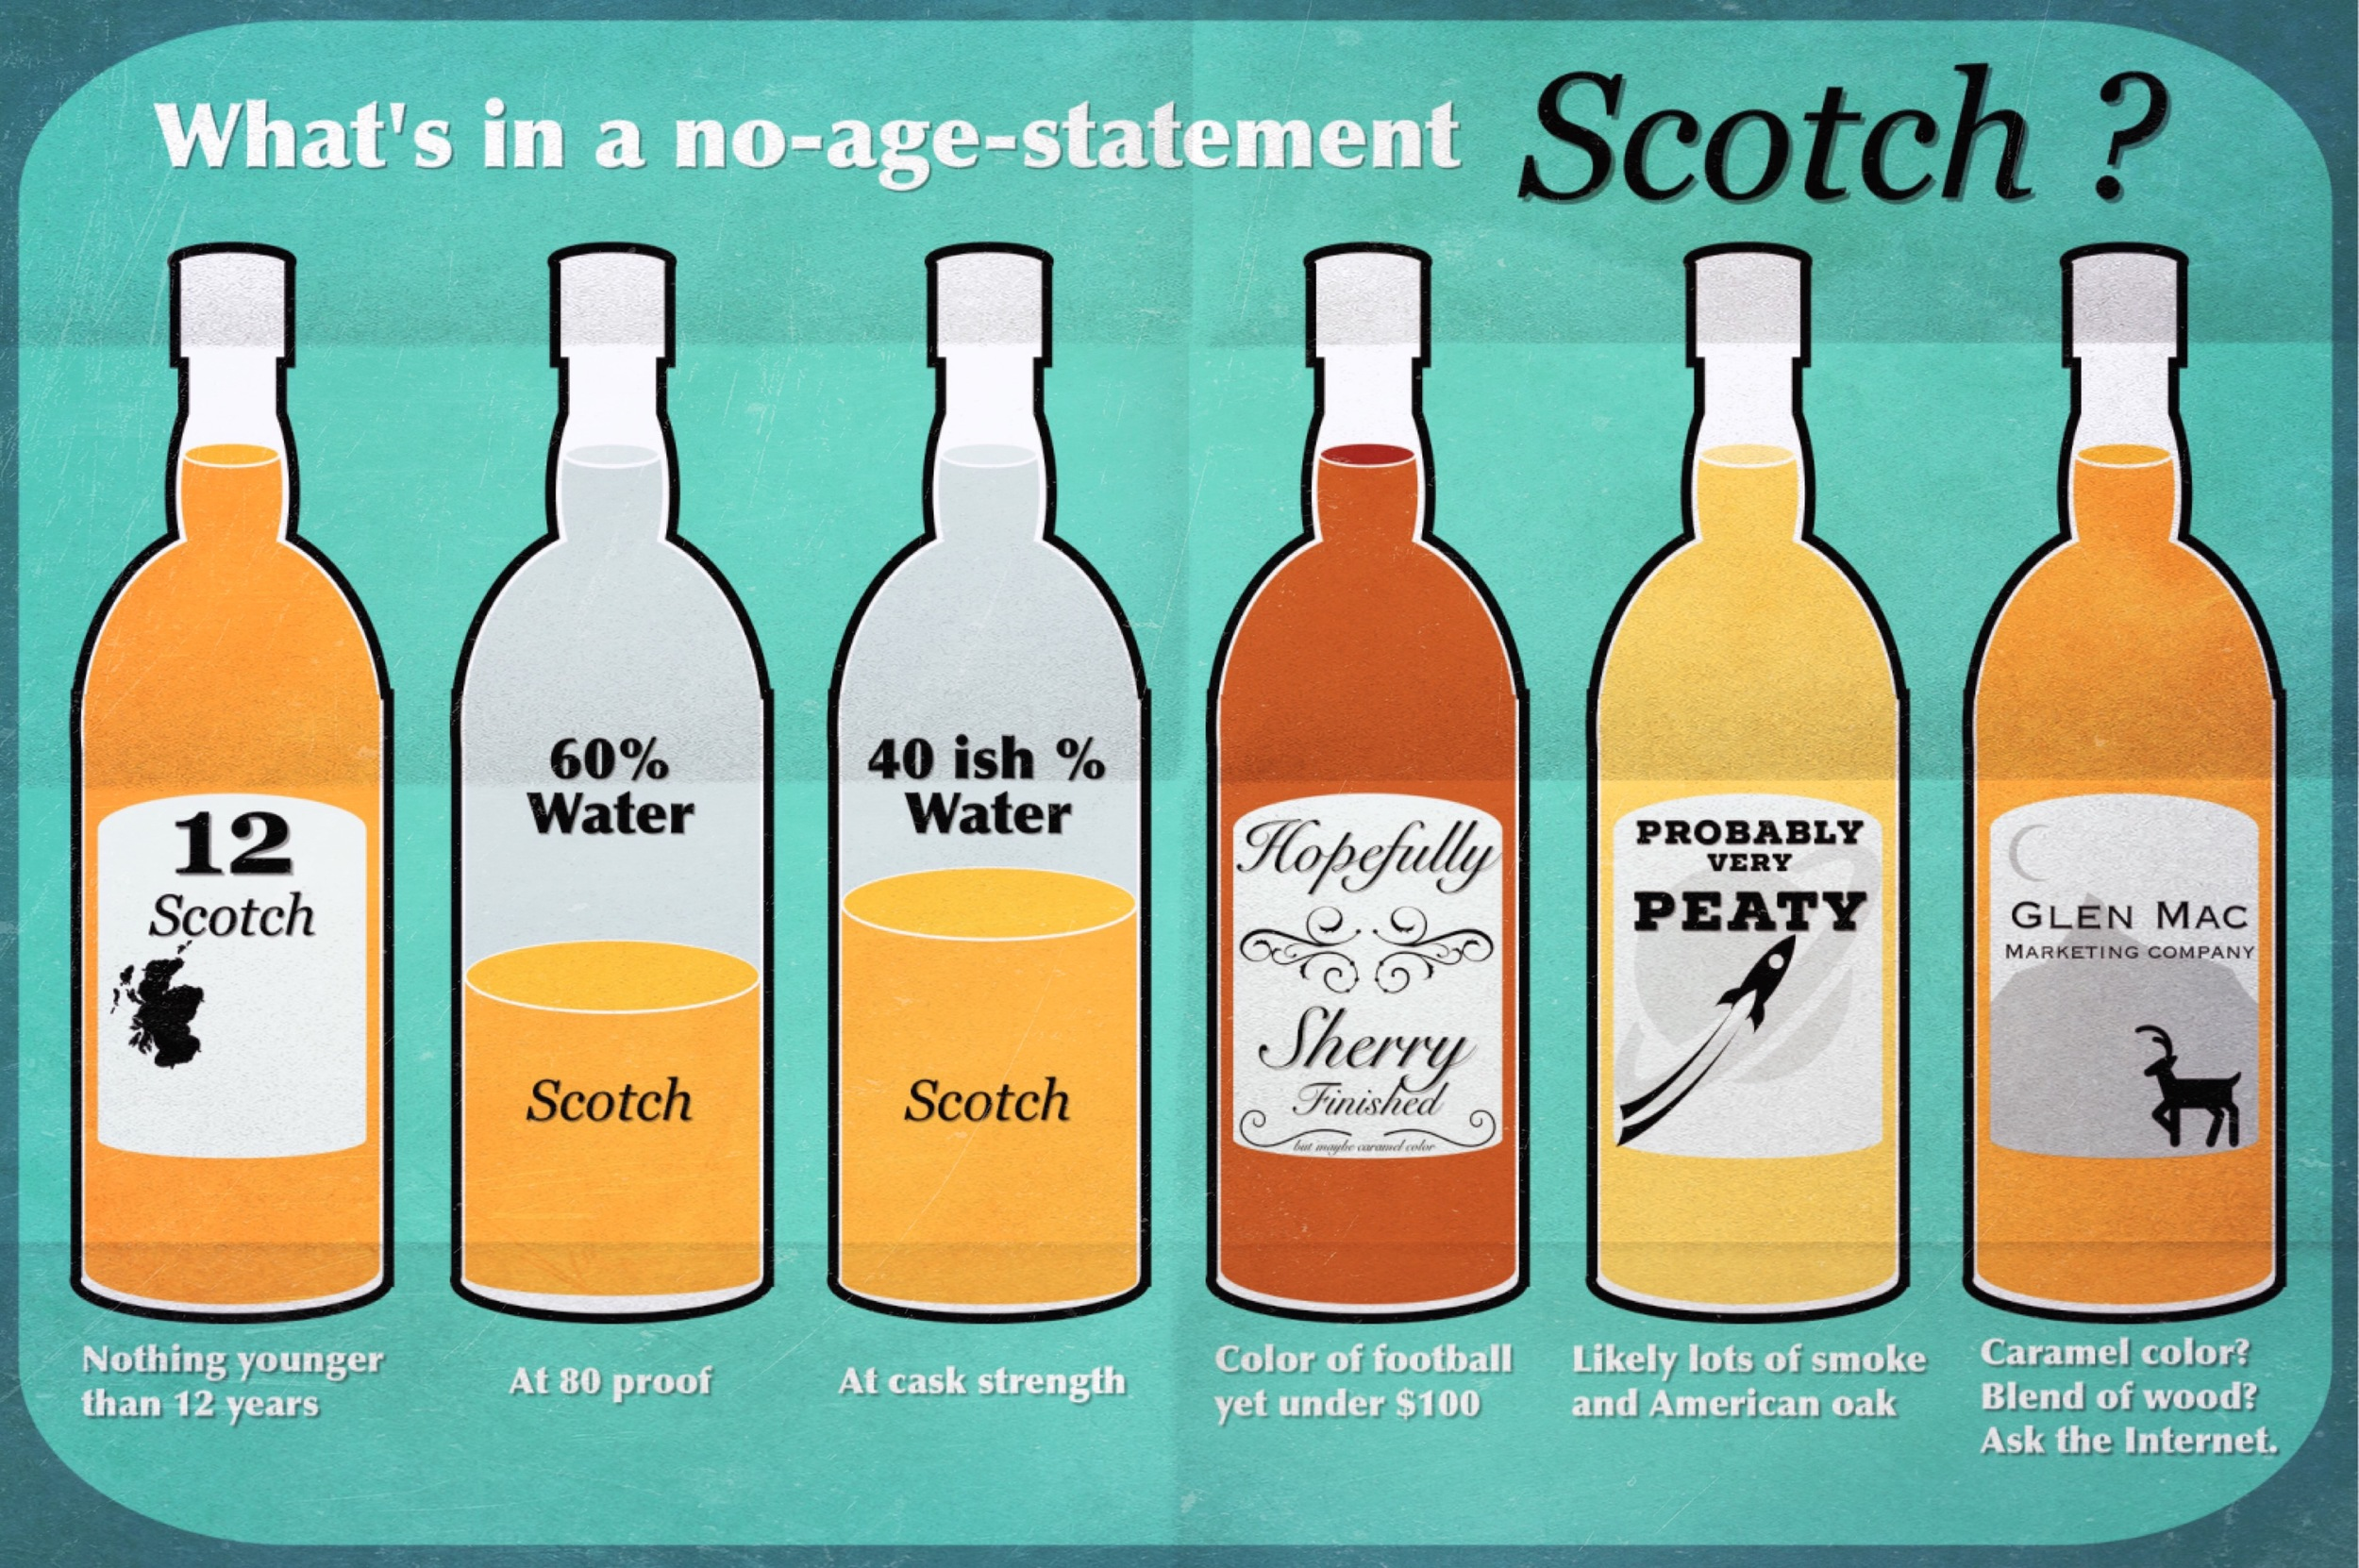 Fold this up for your pocket next time to are choosing in a liquor store